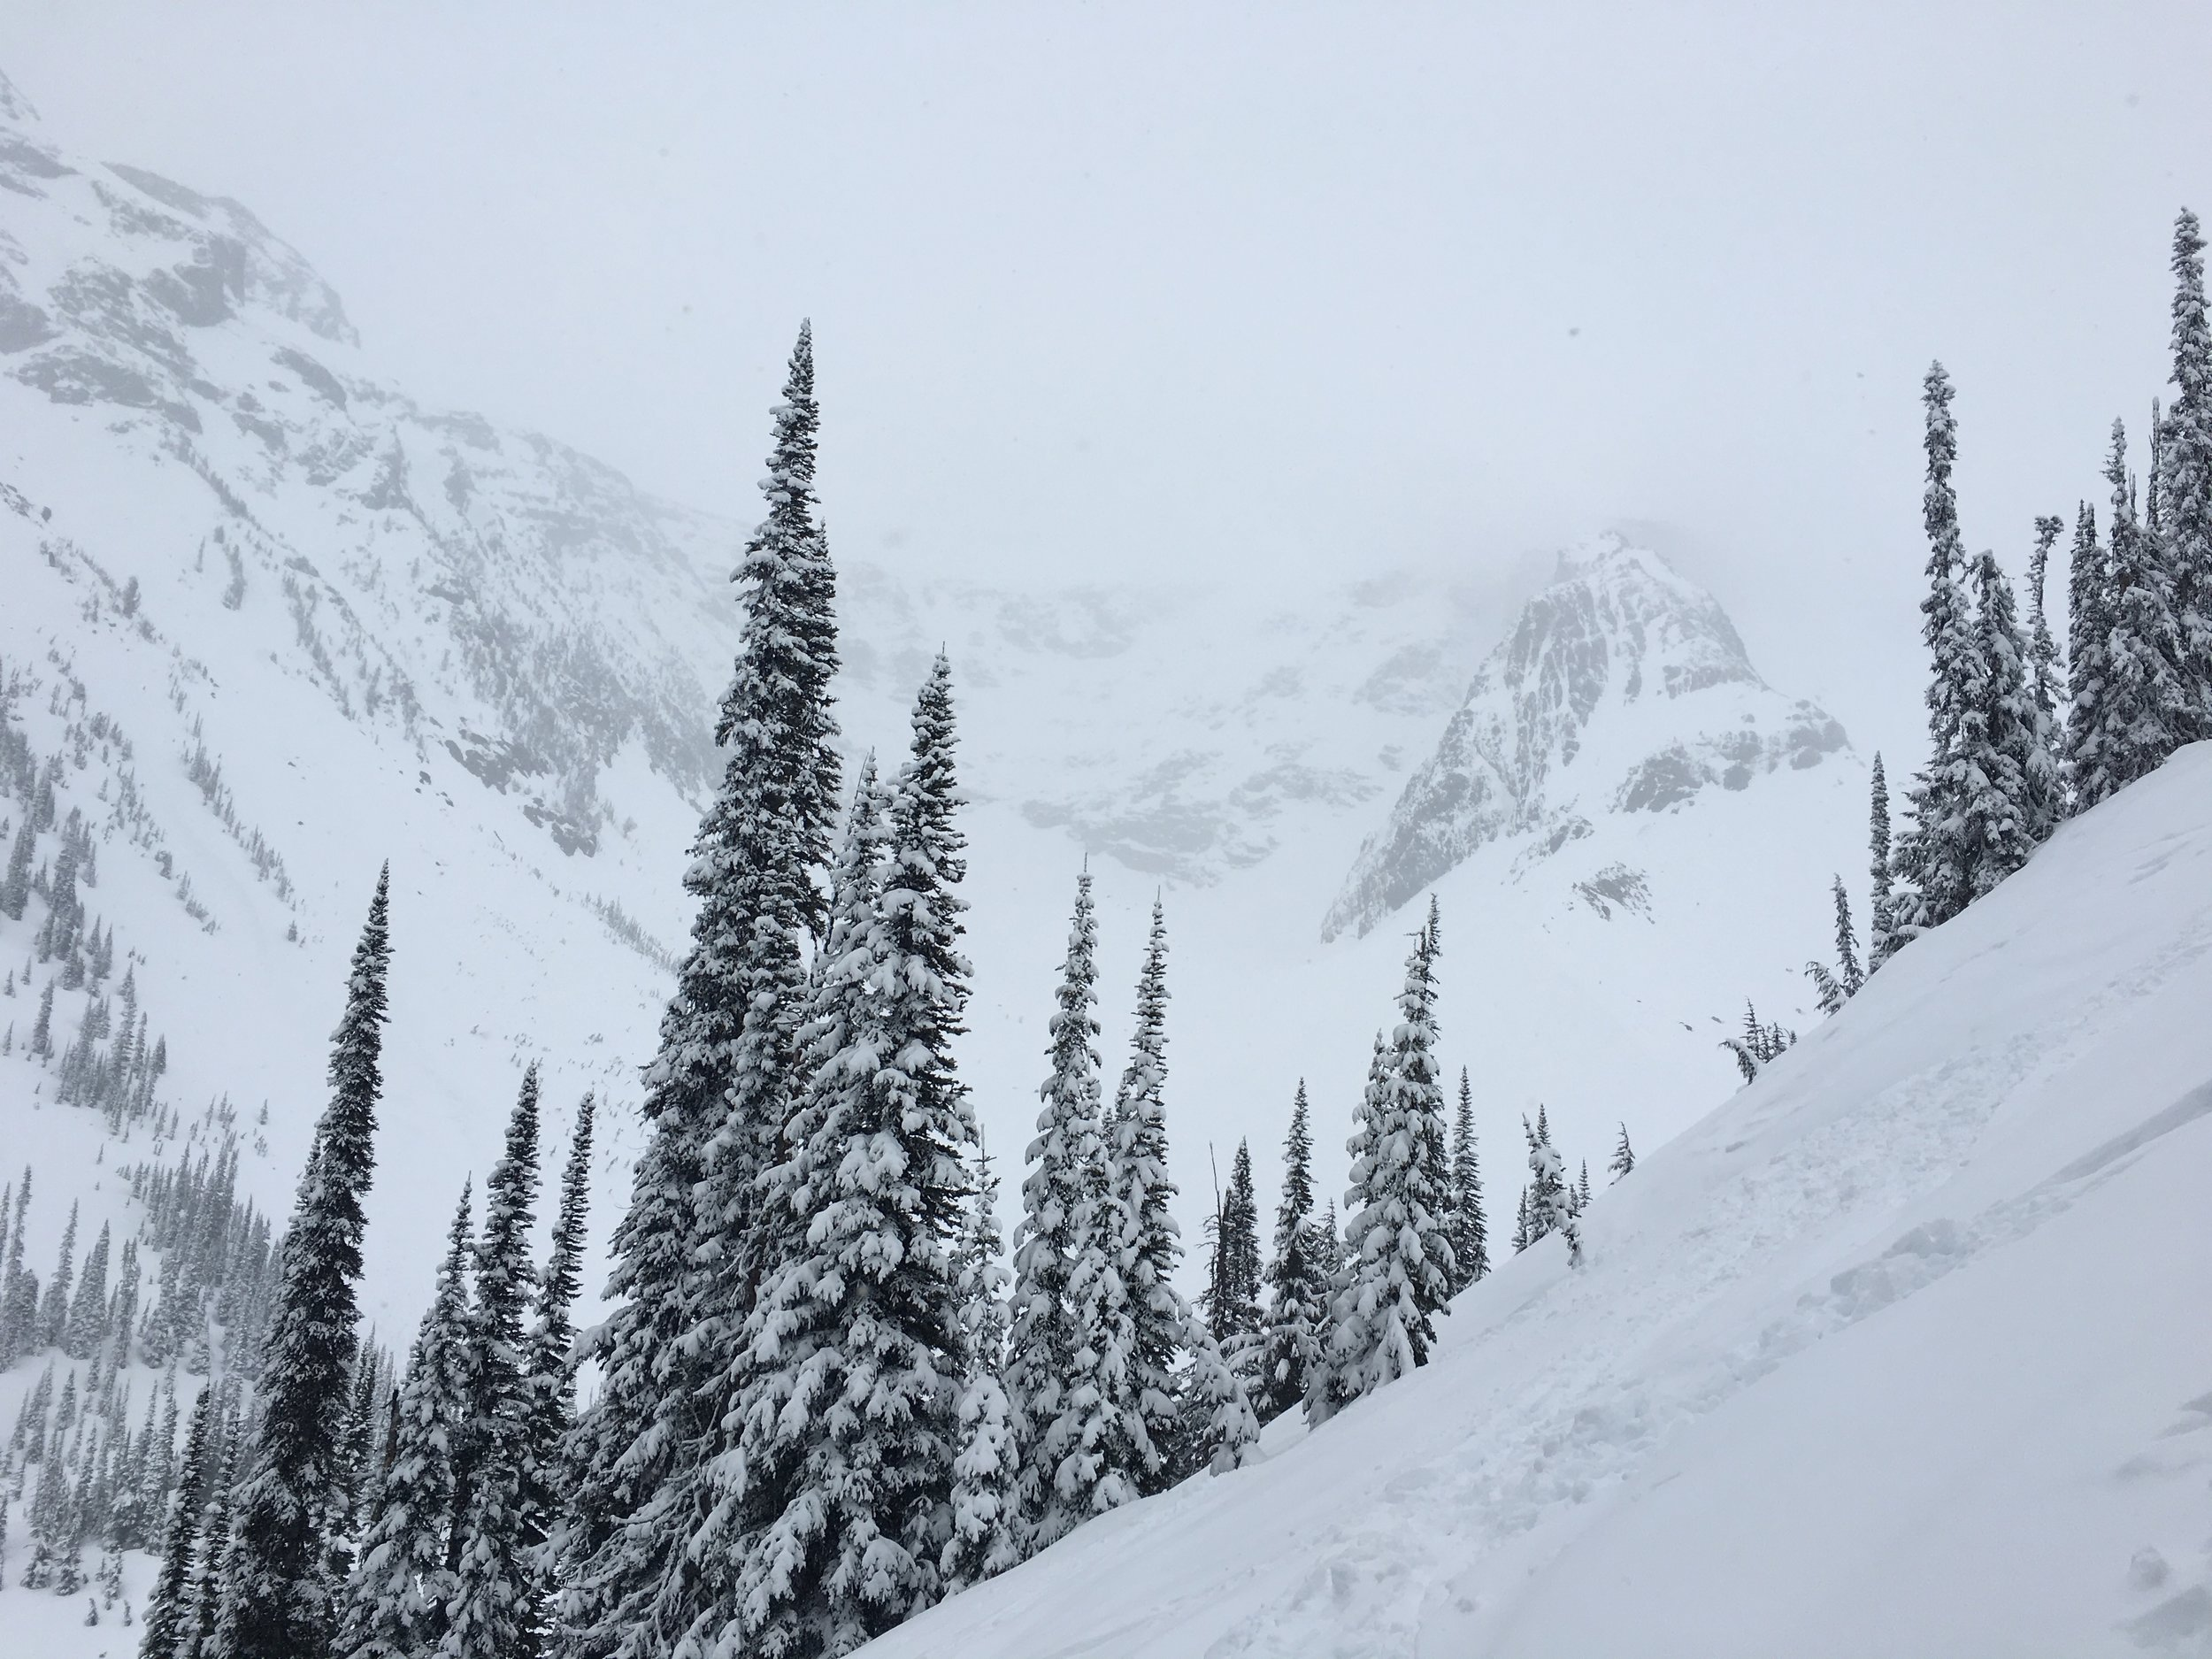 Shot from Triangle Trees looking up at Youngs Peak, hiding in the upper right.  Photo: Zach Husted